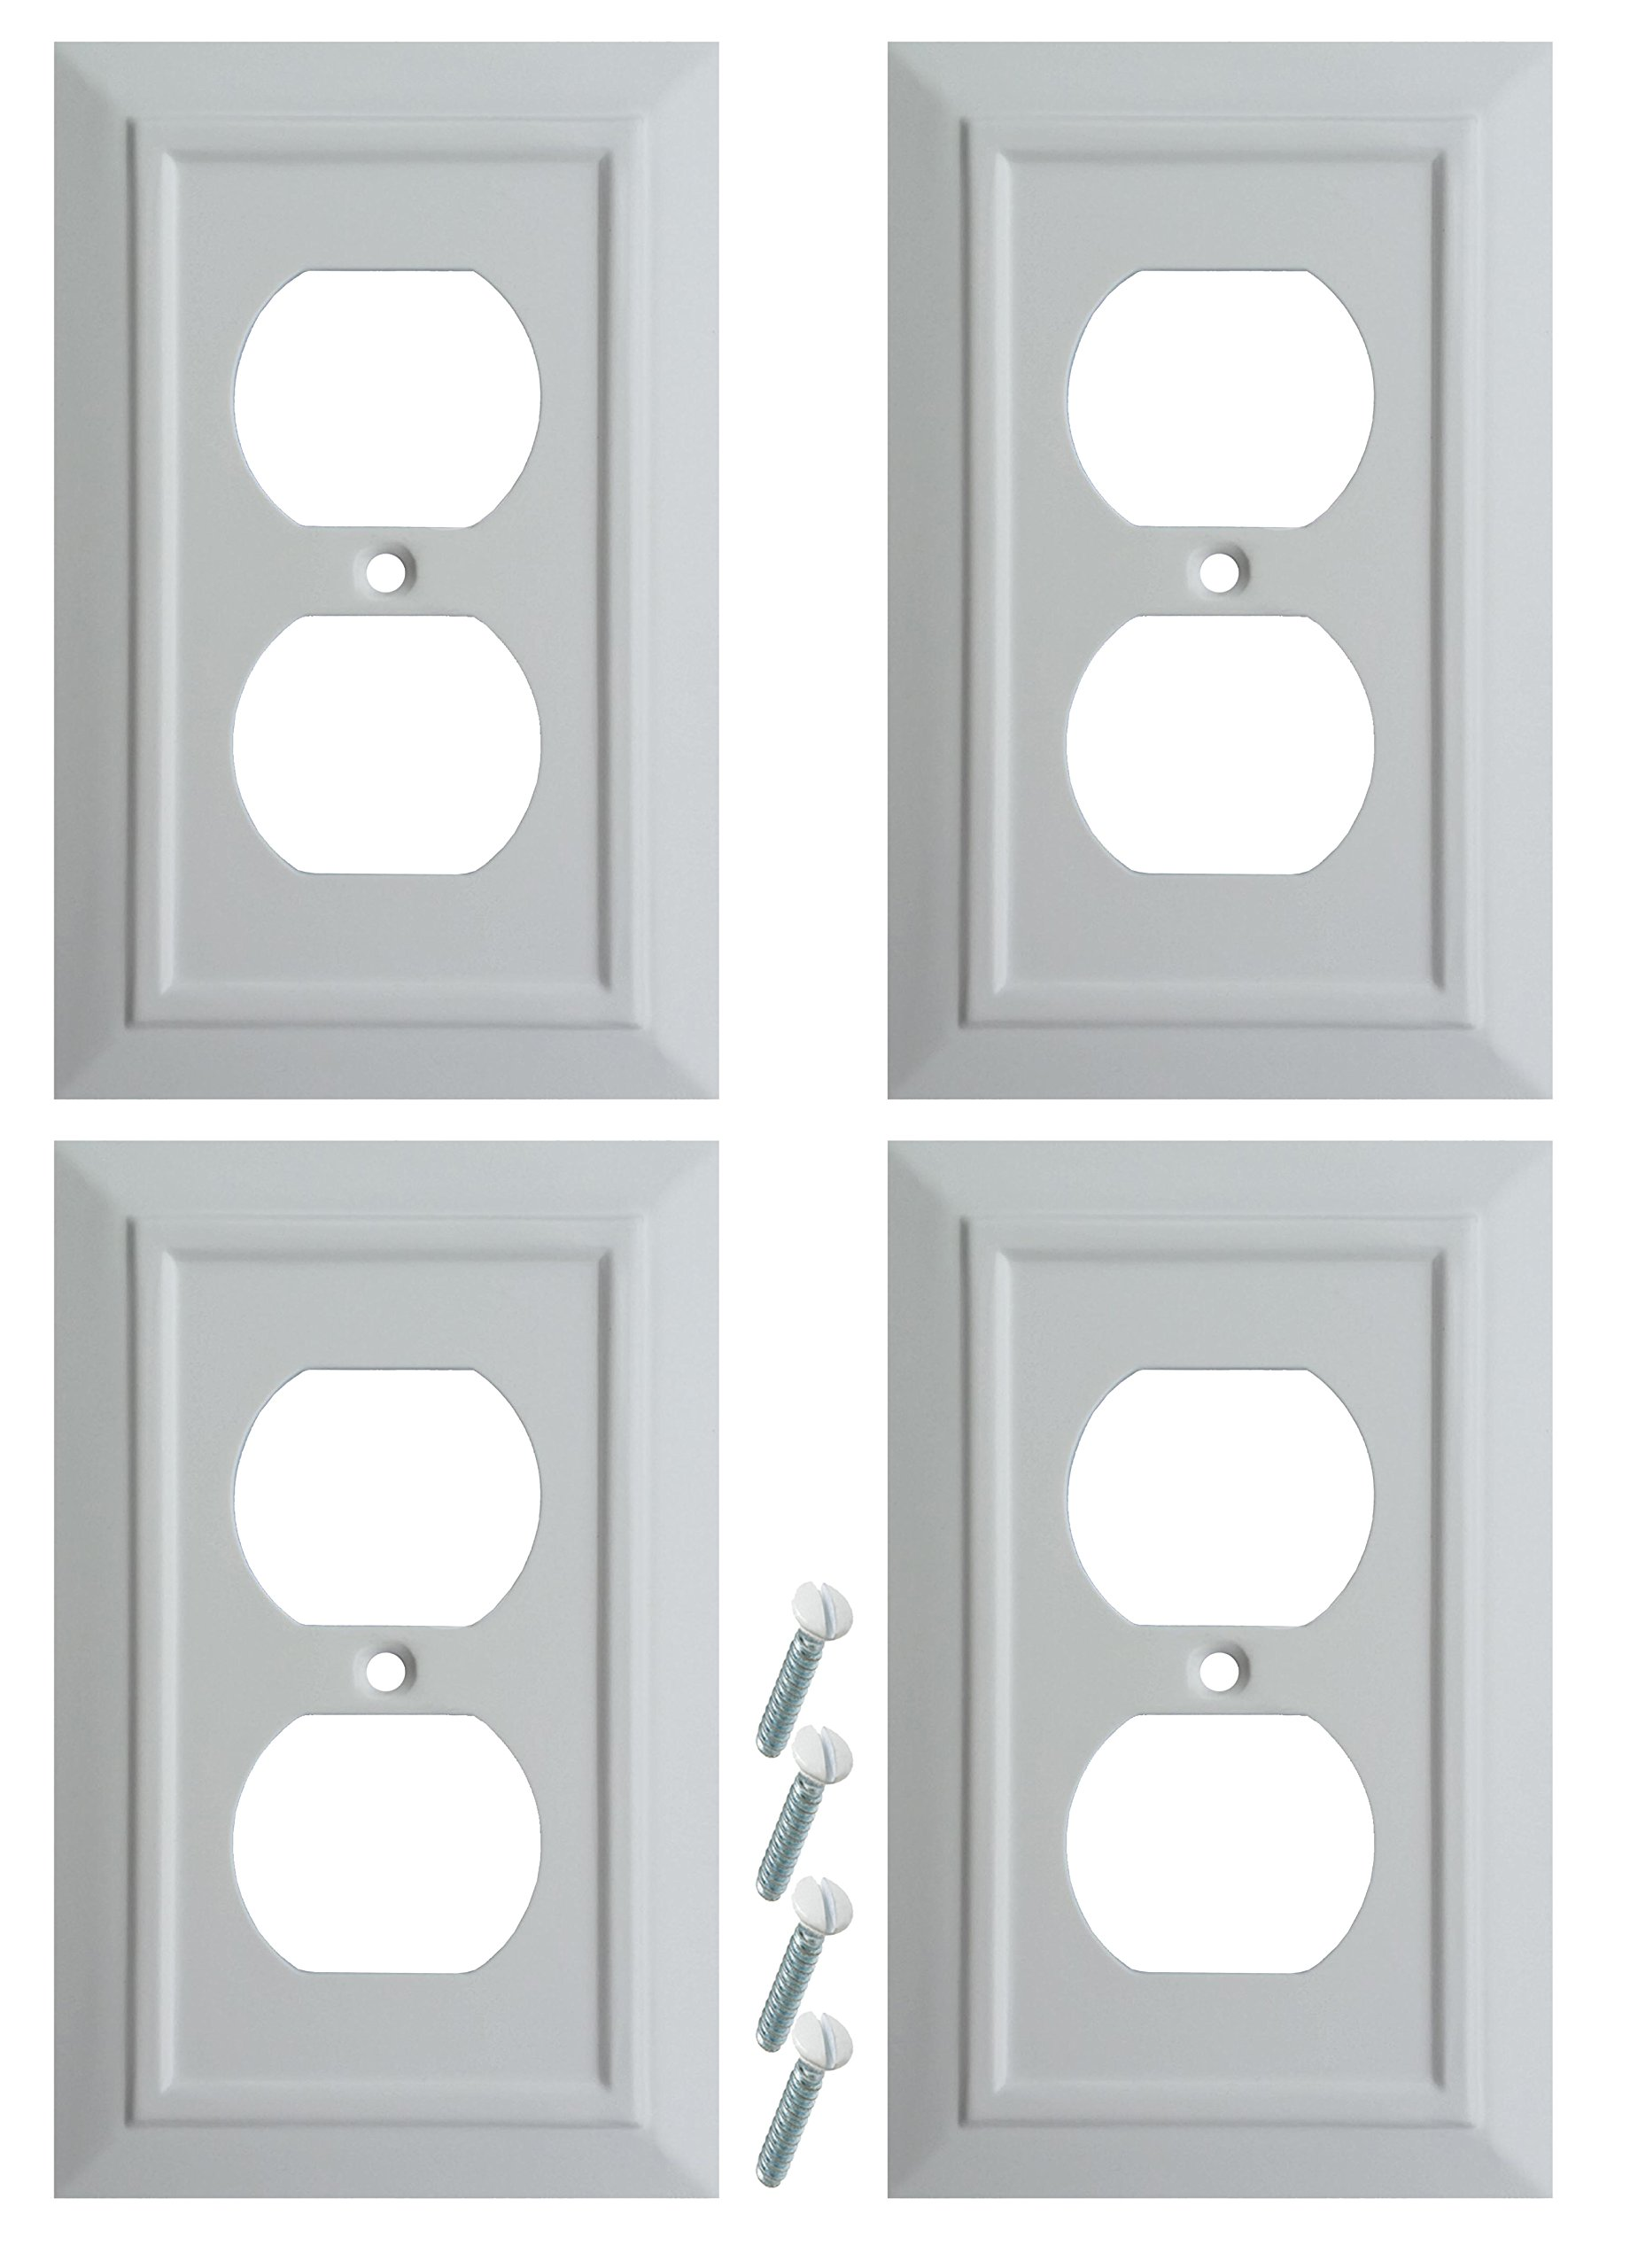 Pack of 4 Wall Plate Outlet Switch Covers by SleekLighting | Classic Architecture Wall plates| Variety of Styles: Decorator/Duplex/Toggle/Blank/& Combo | Size: 1 Gang Receptacle